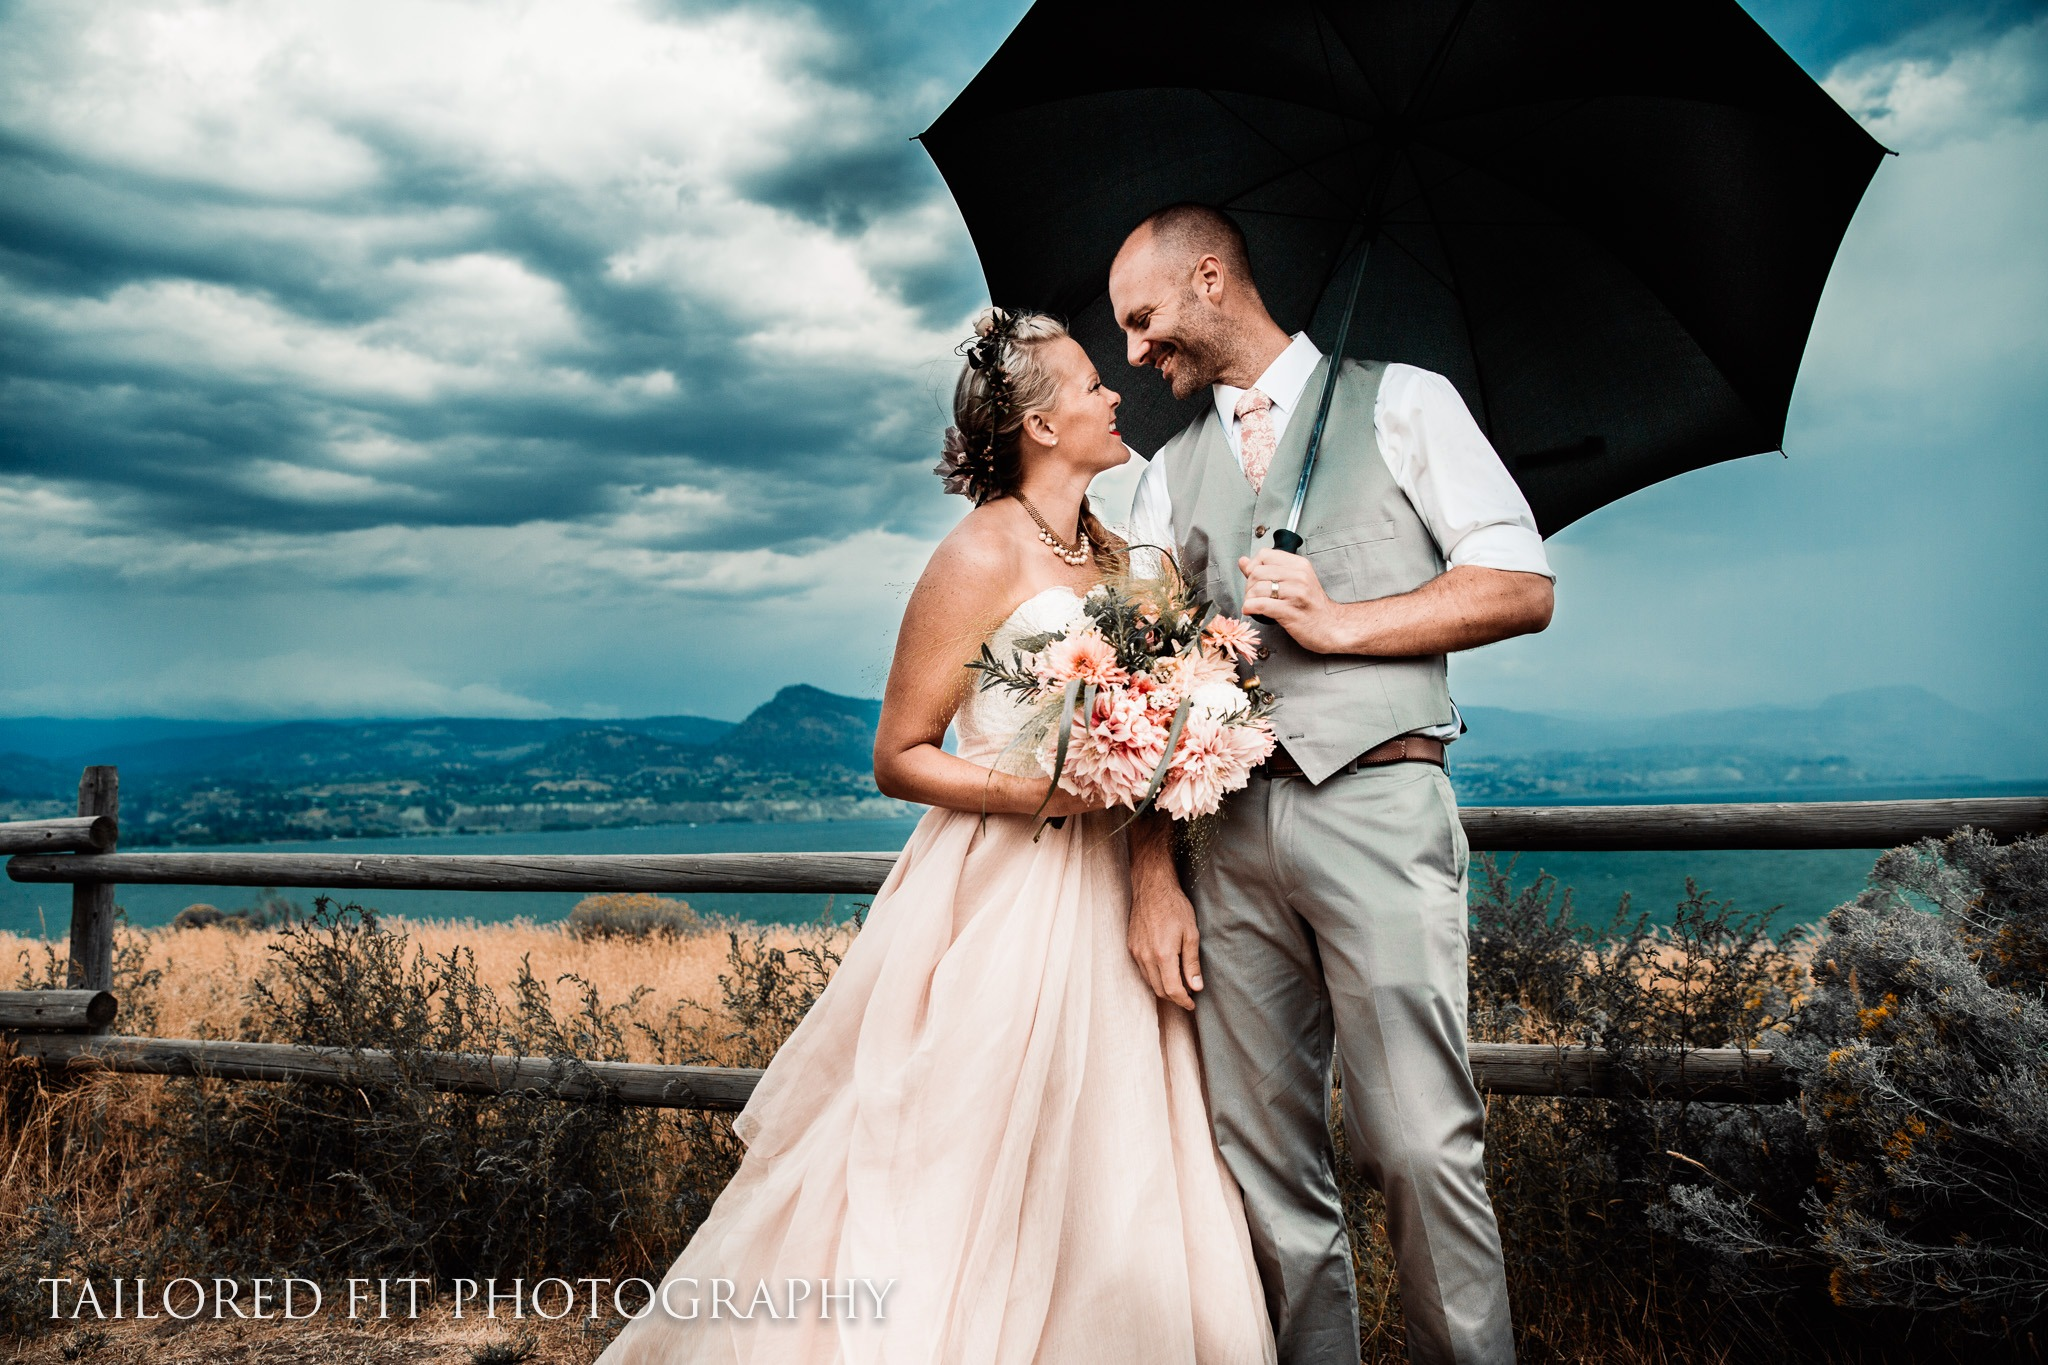 Greg & Melody's Rainy Day Wedding! Tailored Fit Photography-0018